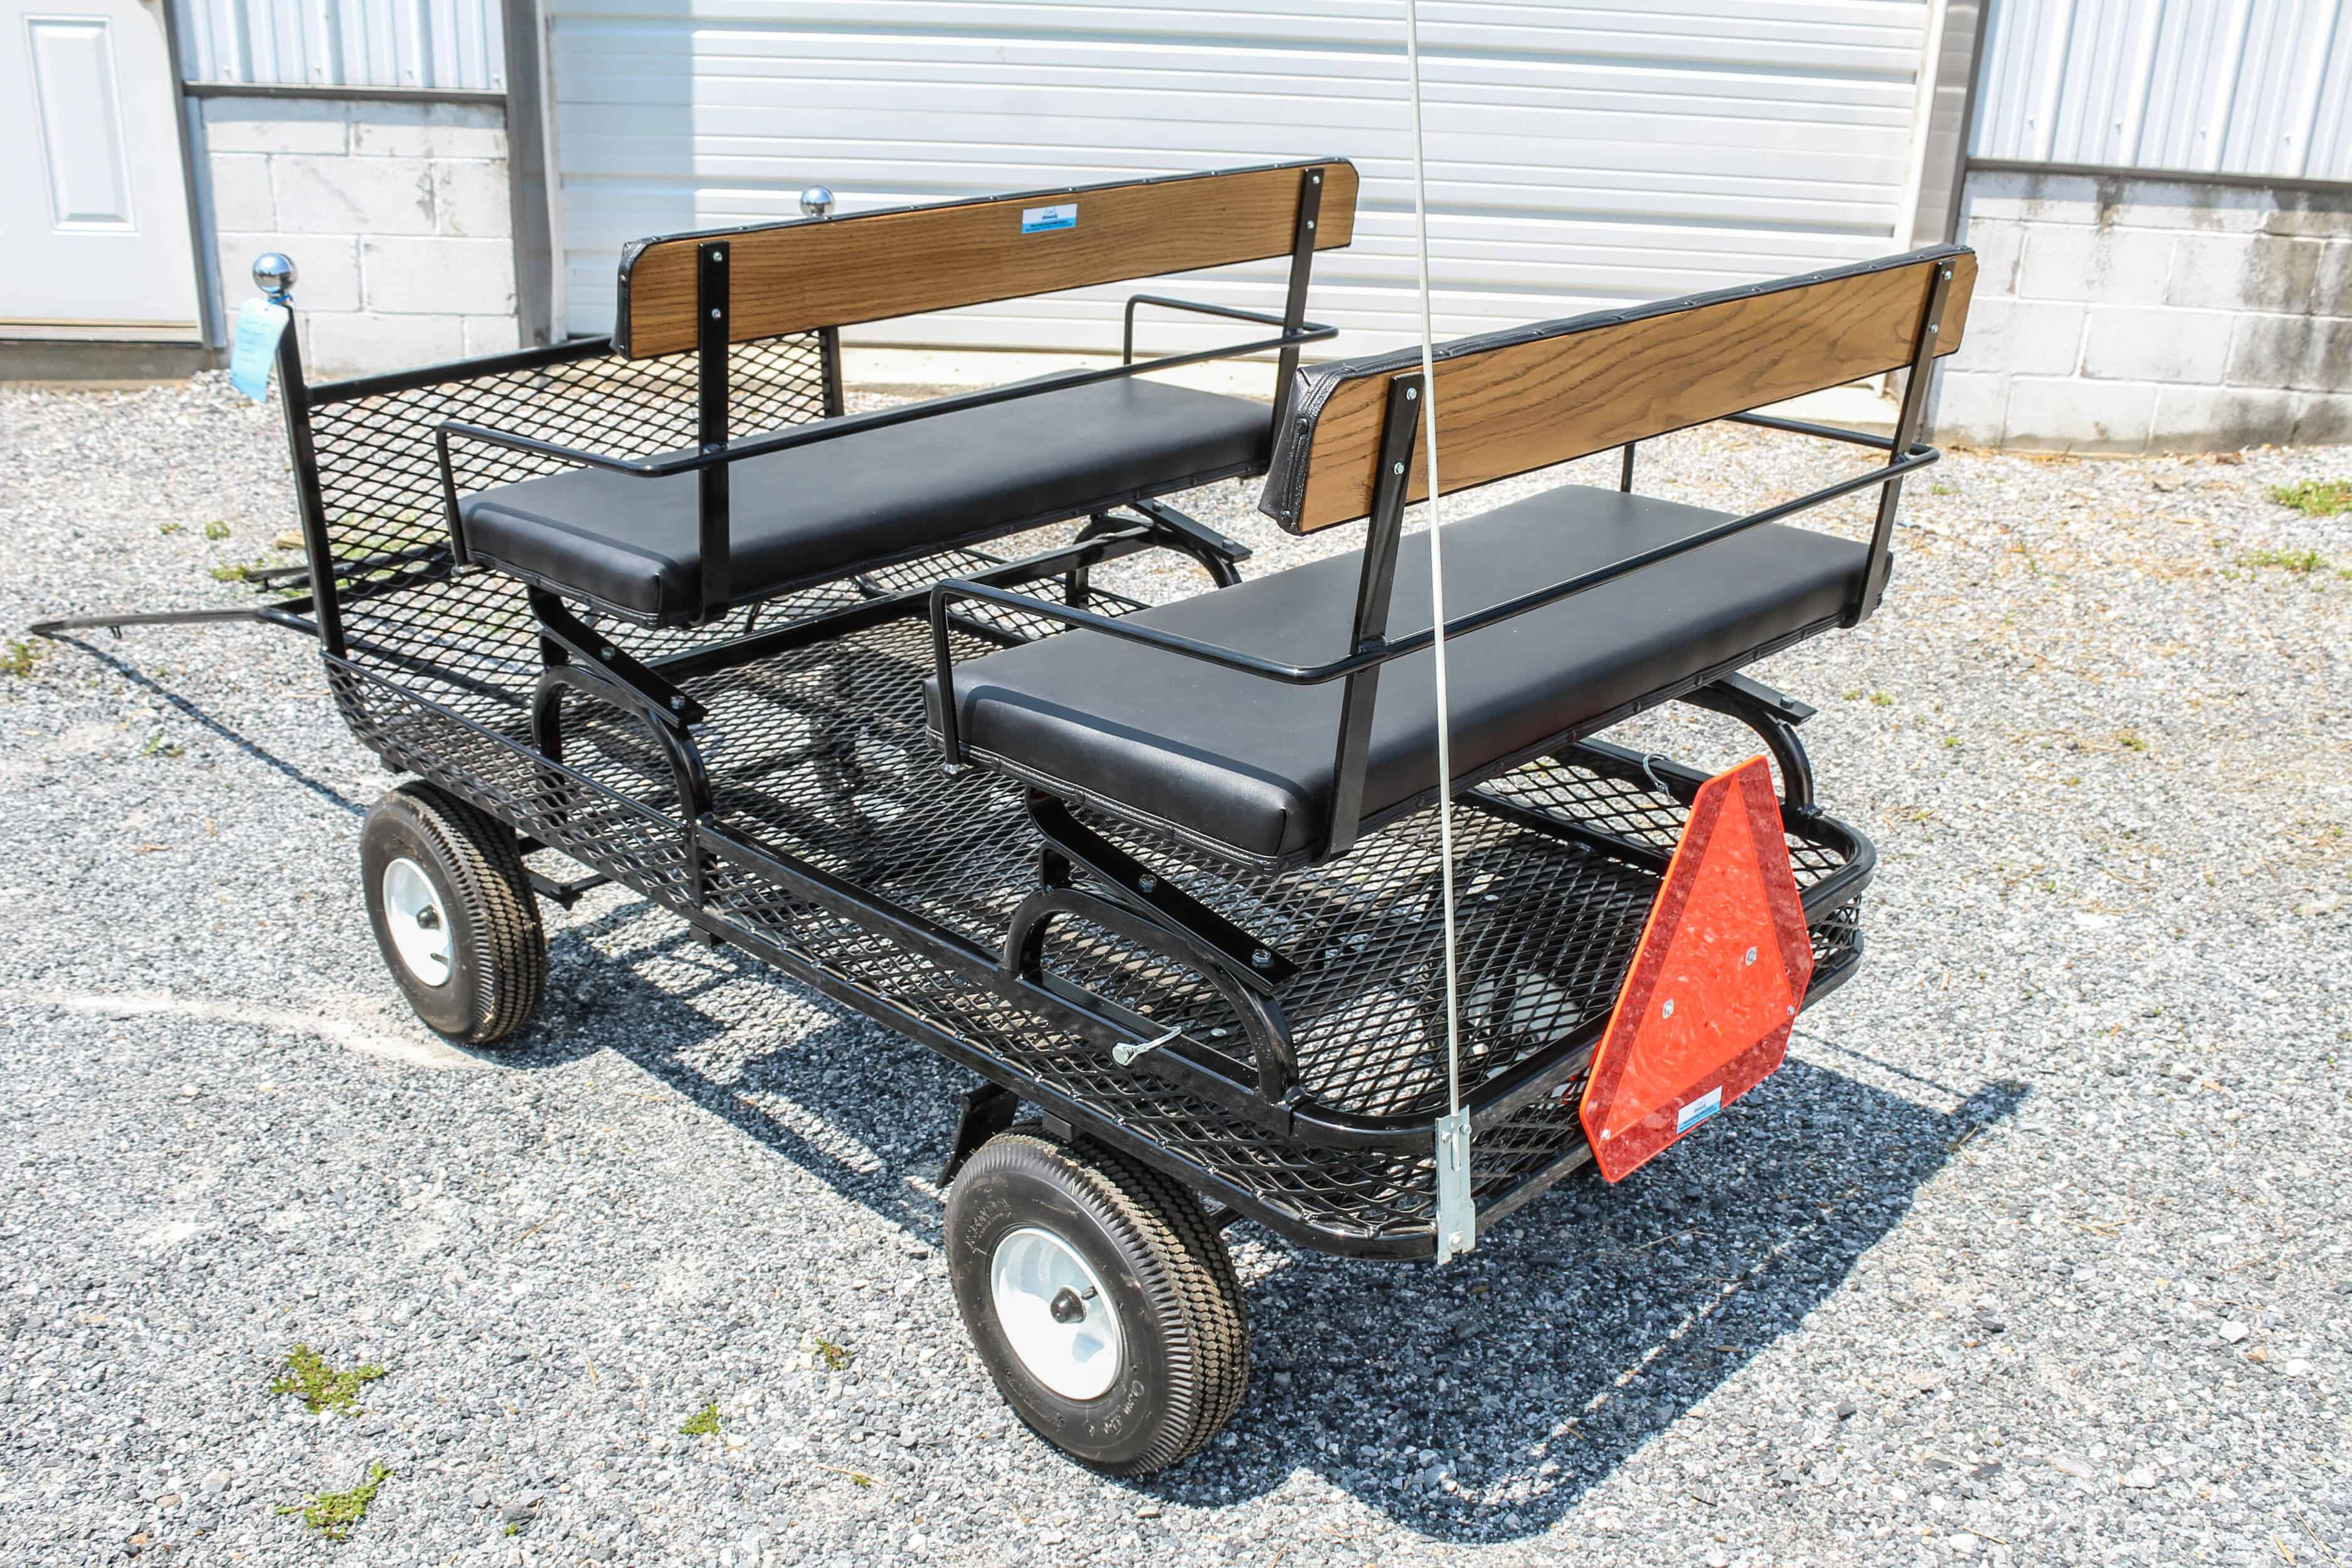 "#538 New 34"" x 64"" Metal Pony Wagon- 2 Seats- Brakes Shaft- Rear Seat is Removable- 14"" Heavy Duty Wheels $950.00 A"